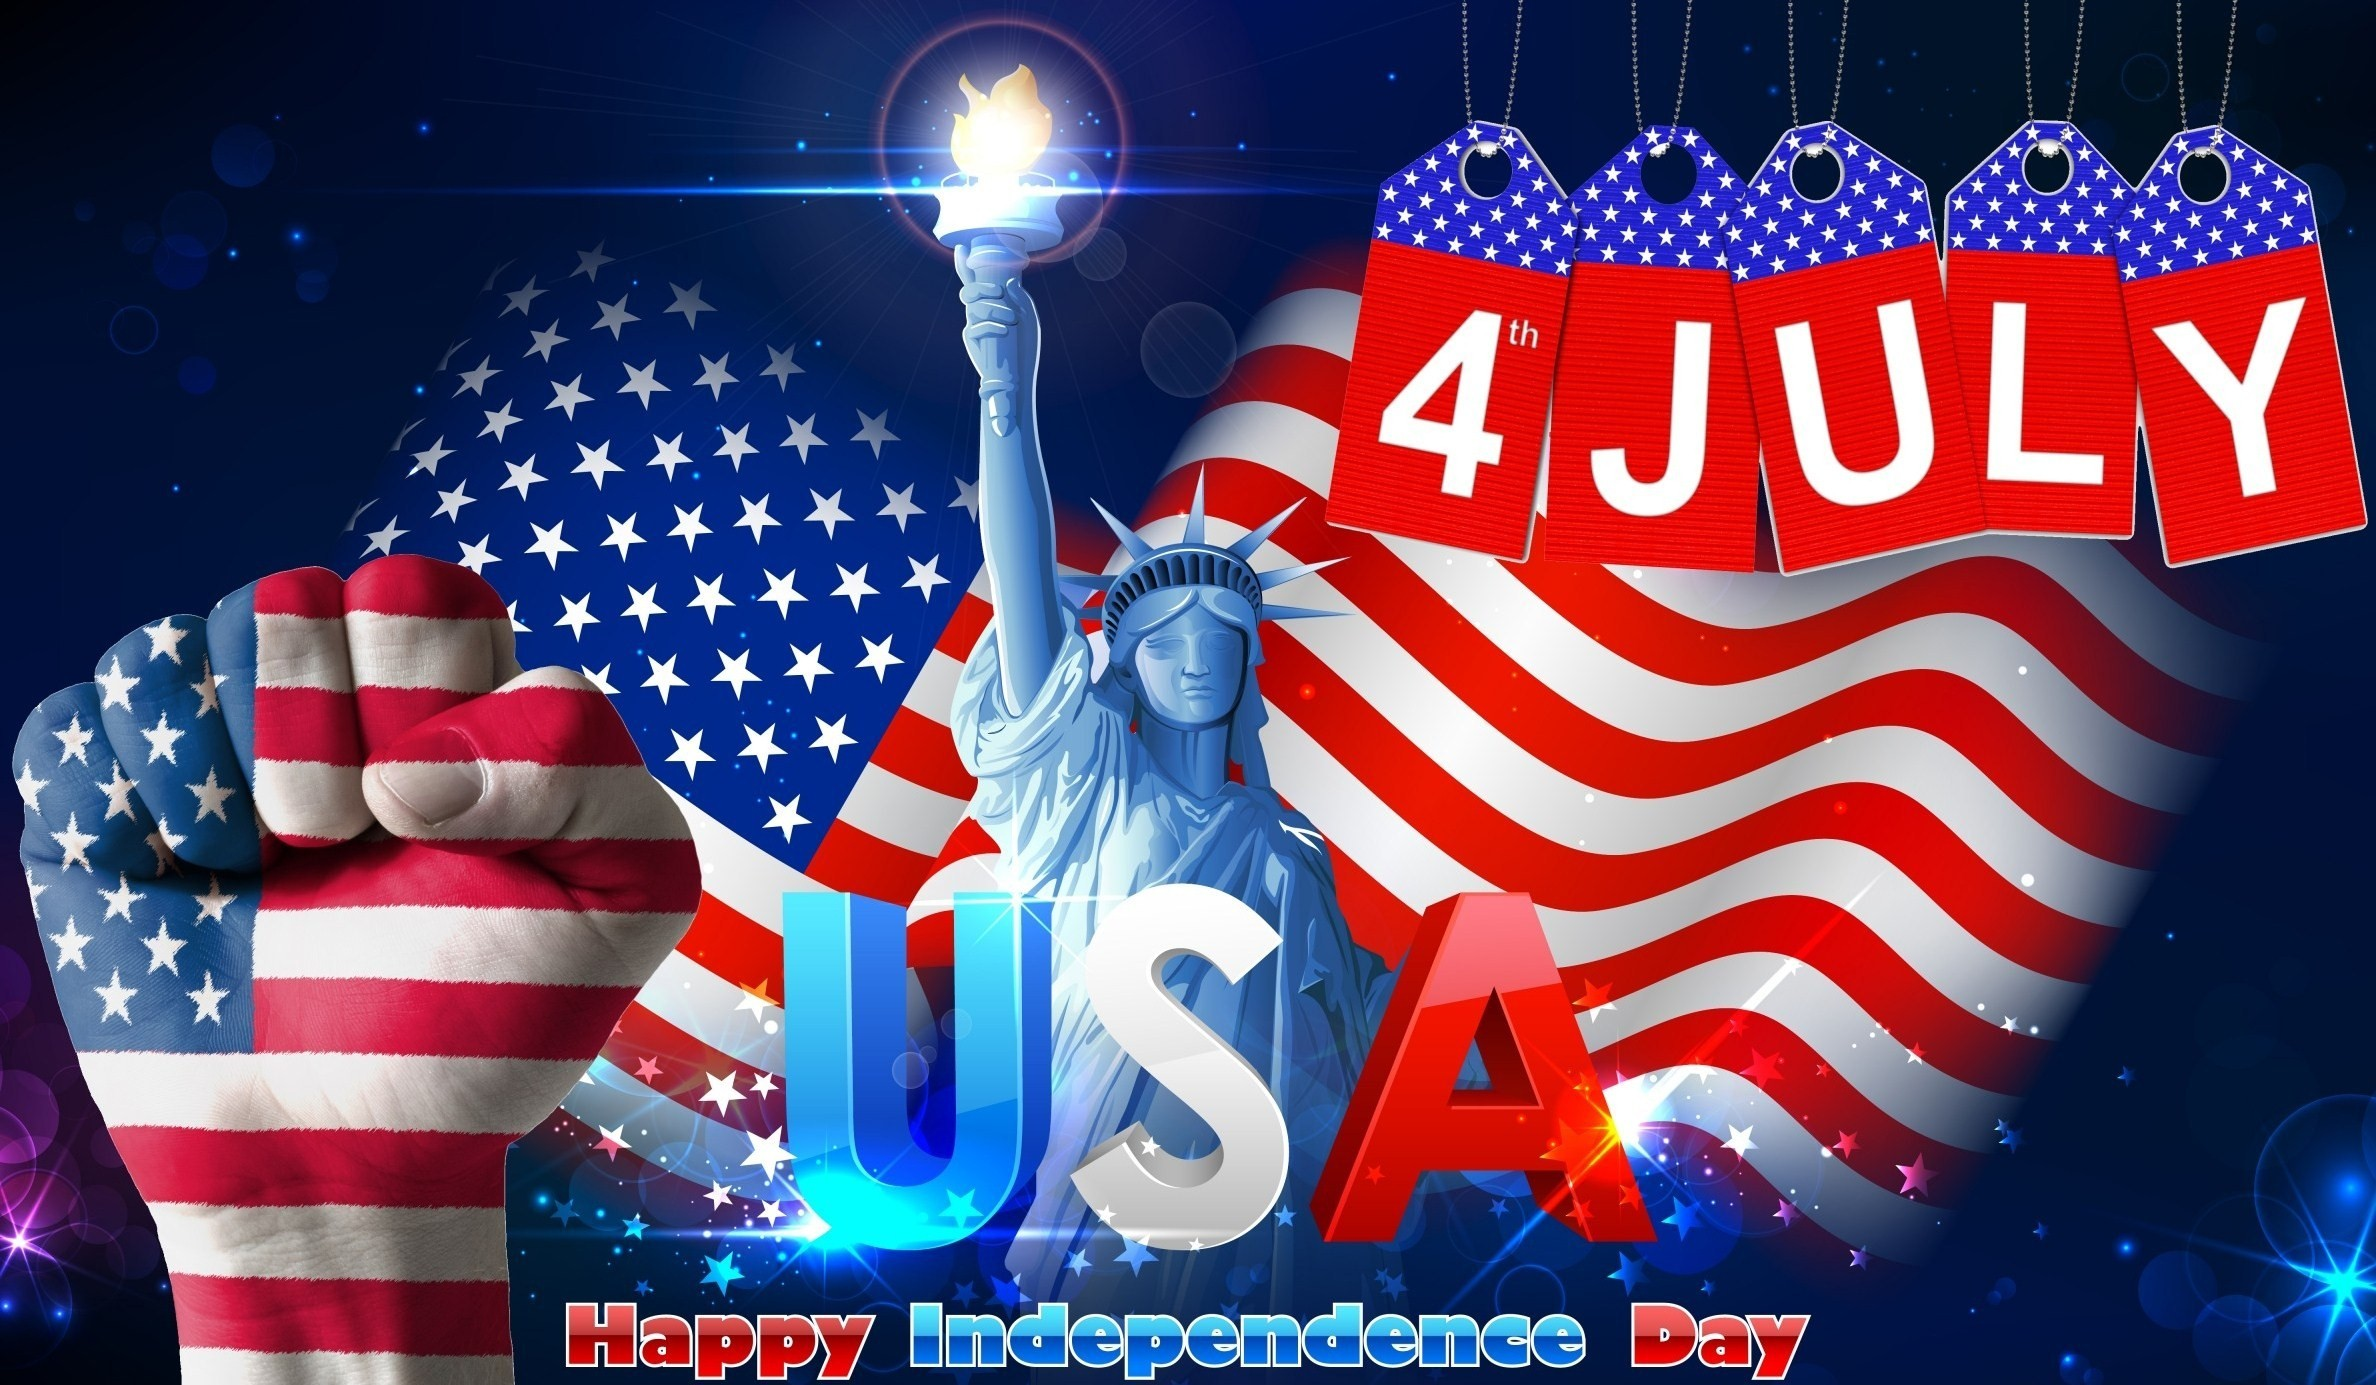 … Independence day united states of america Quotes wallpapers 2014 …